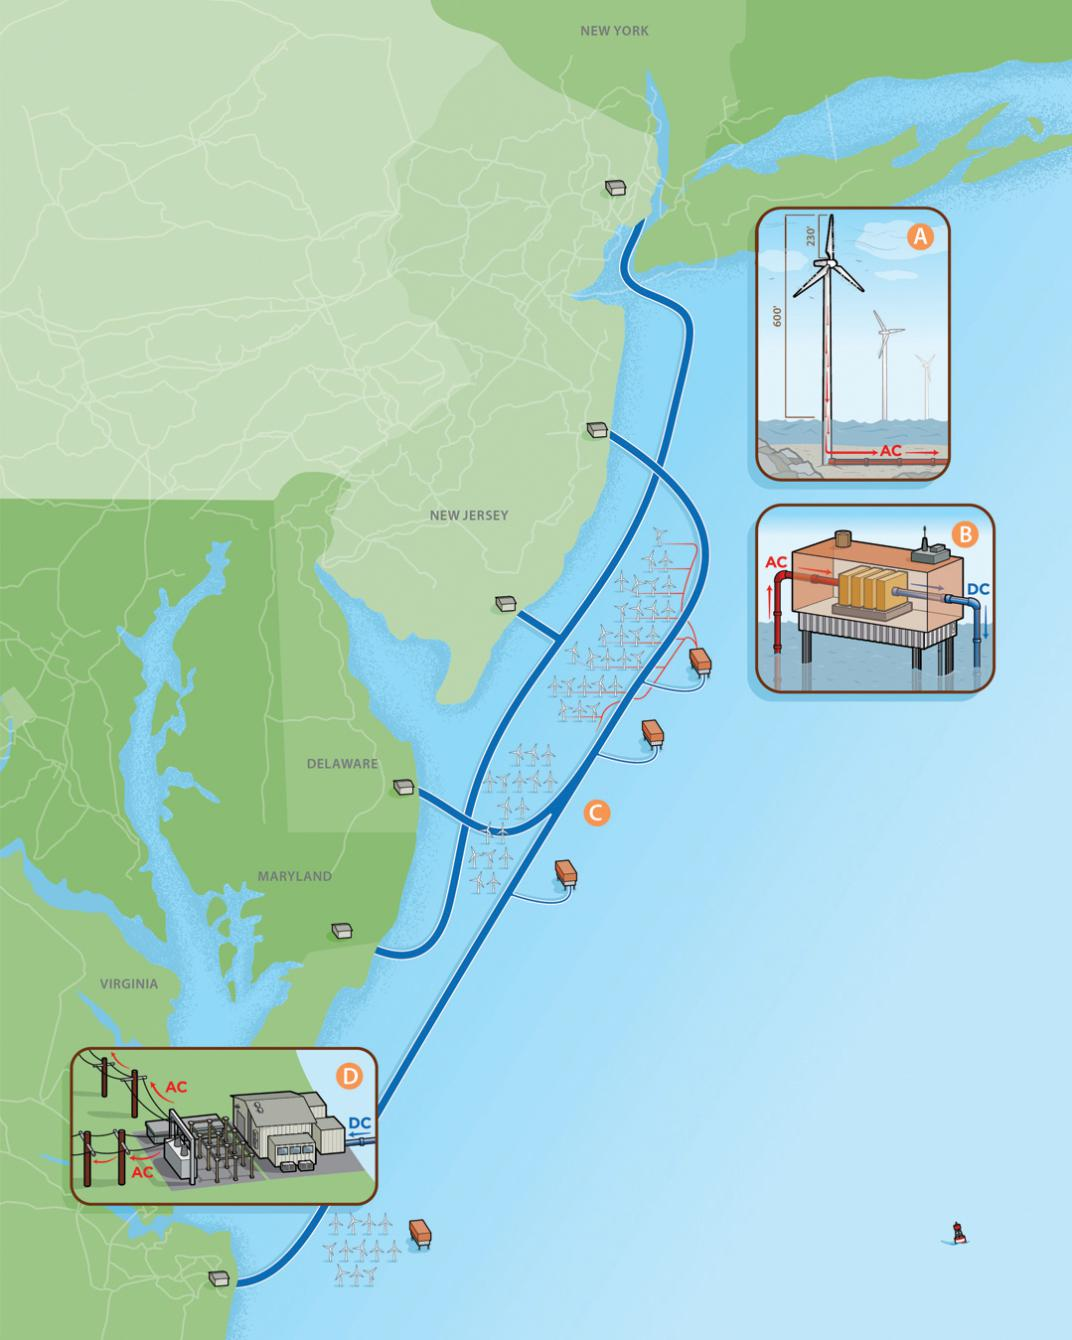 Wind Power Can Save the Grid